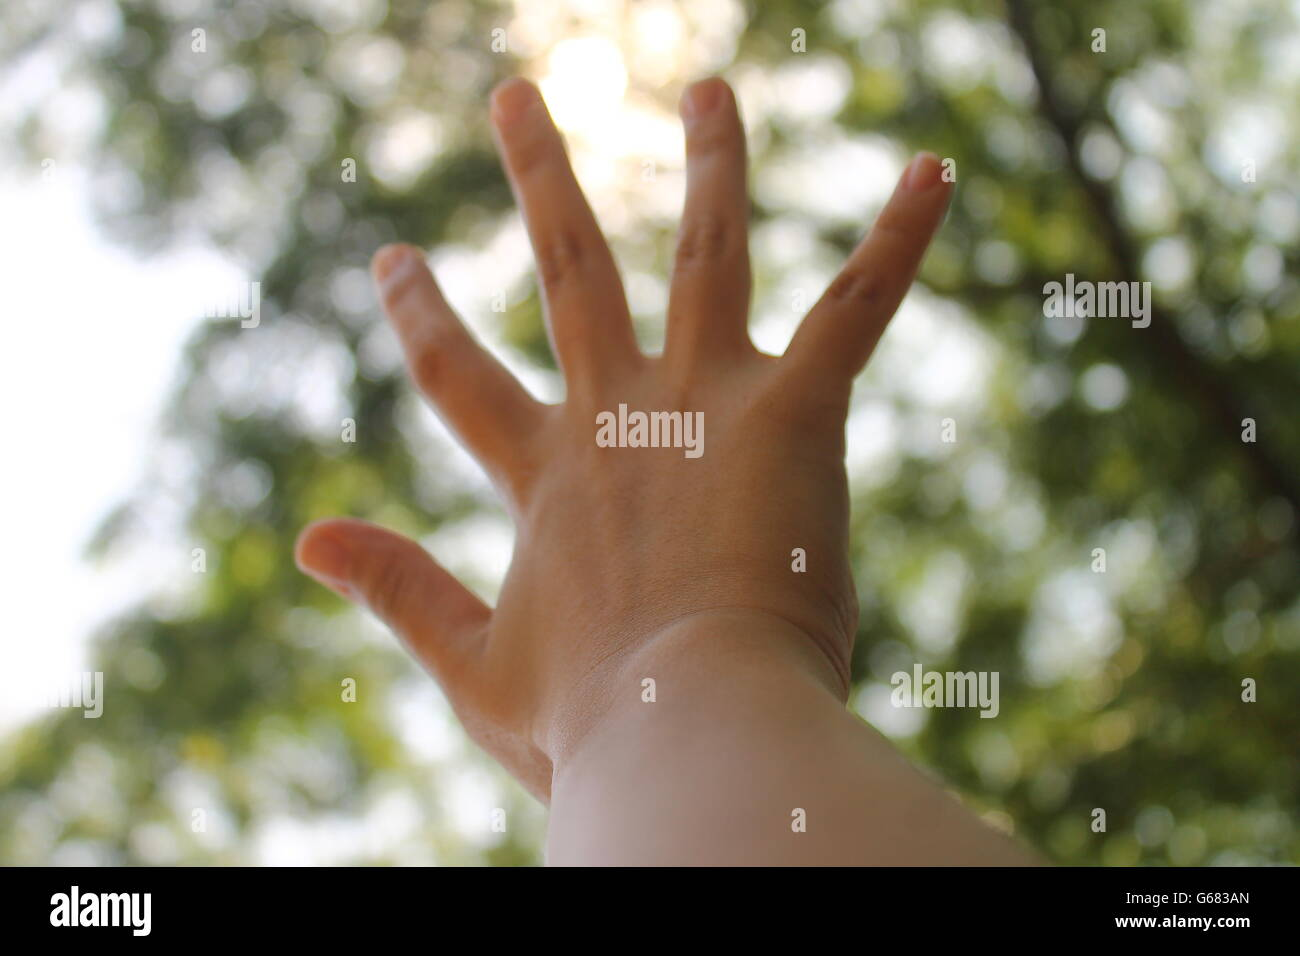 Glimmer of Hope. - Stock Image